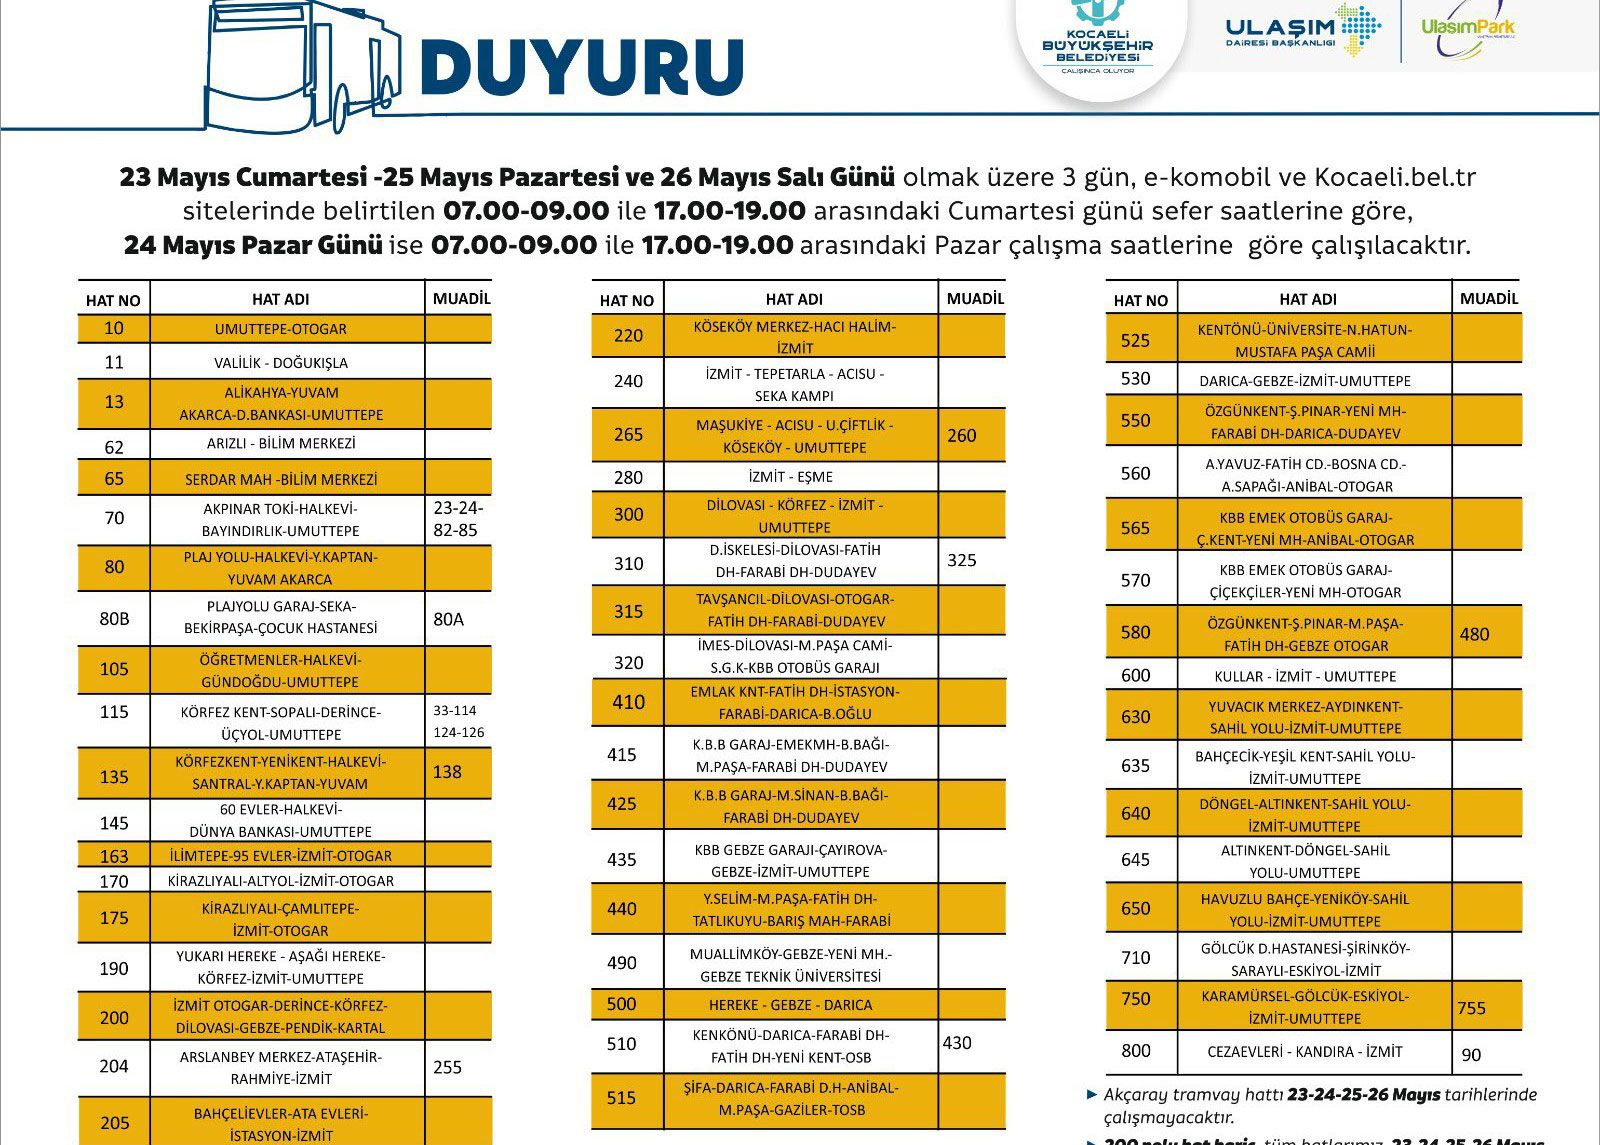 Will the transportation be free during the holiday at Kocaeli?